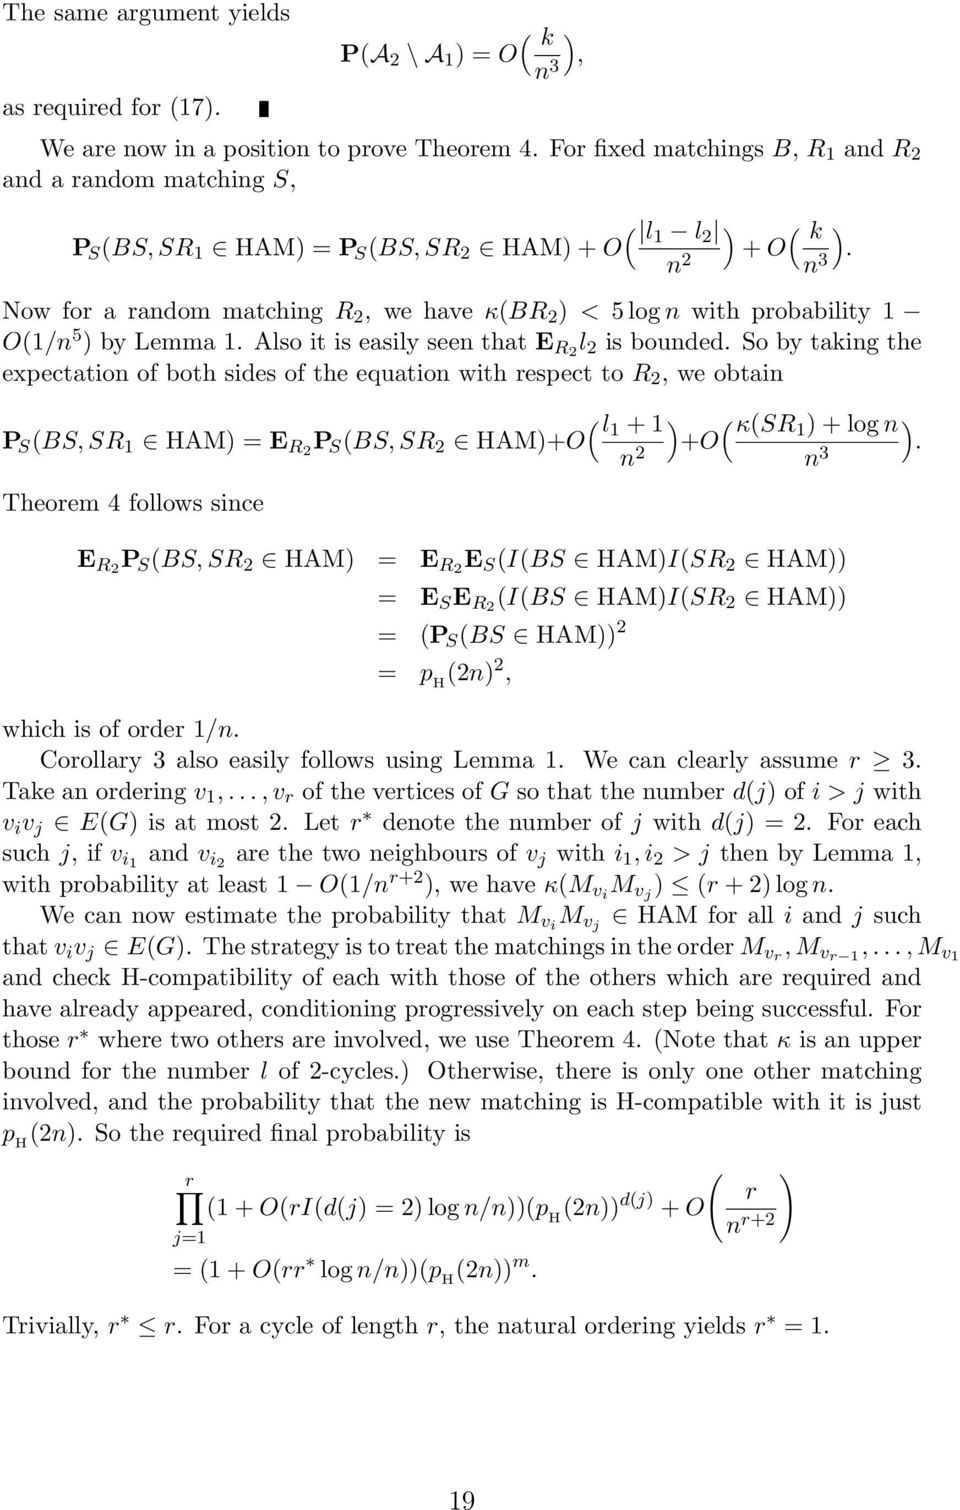 Now for a random matching R, we have κbr ) < 5 log n with probability 1 O1/n 5 ) by Lemma 1. Also it is easily seen that E R l is bounded.